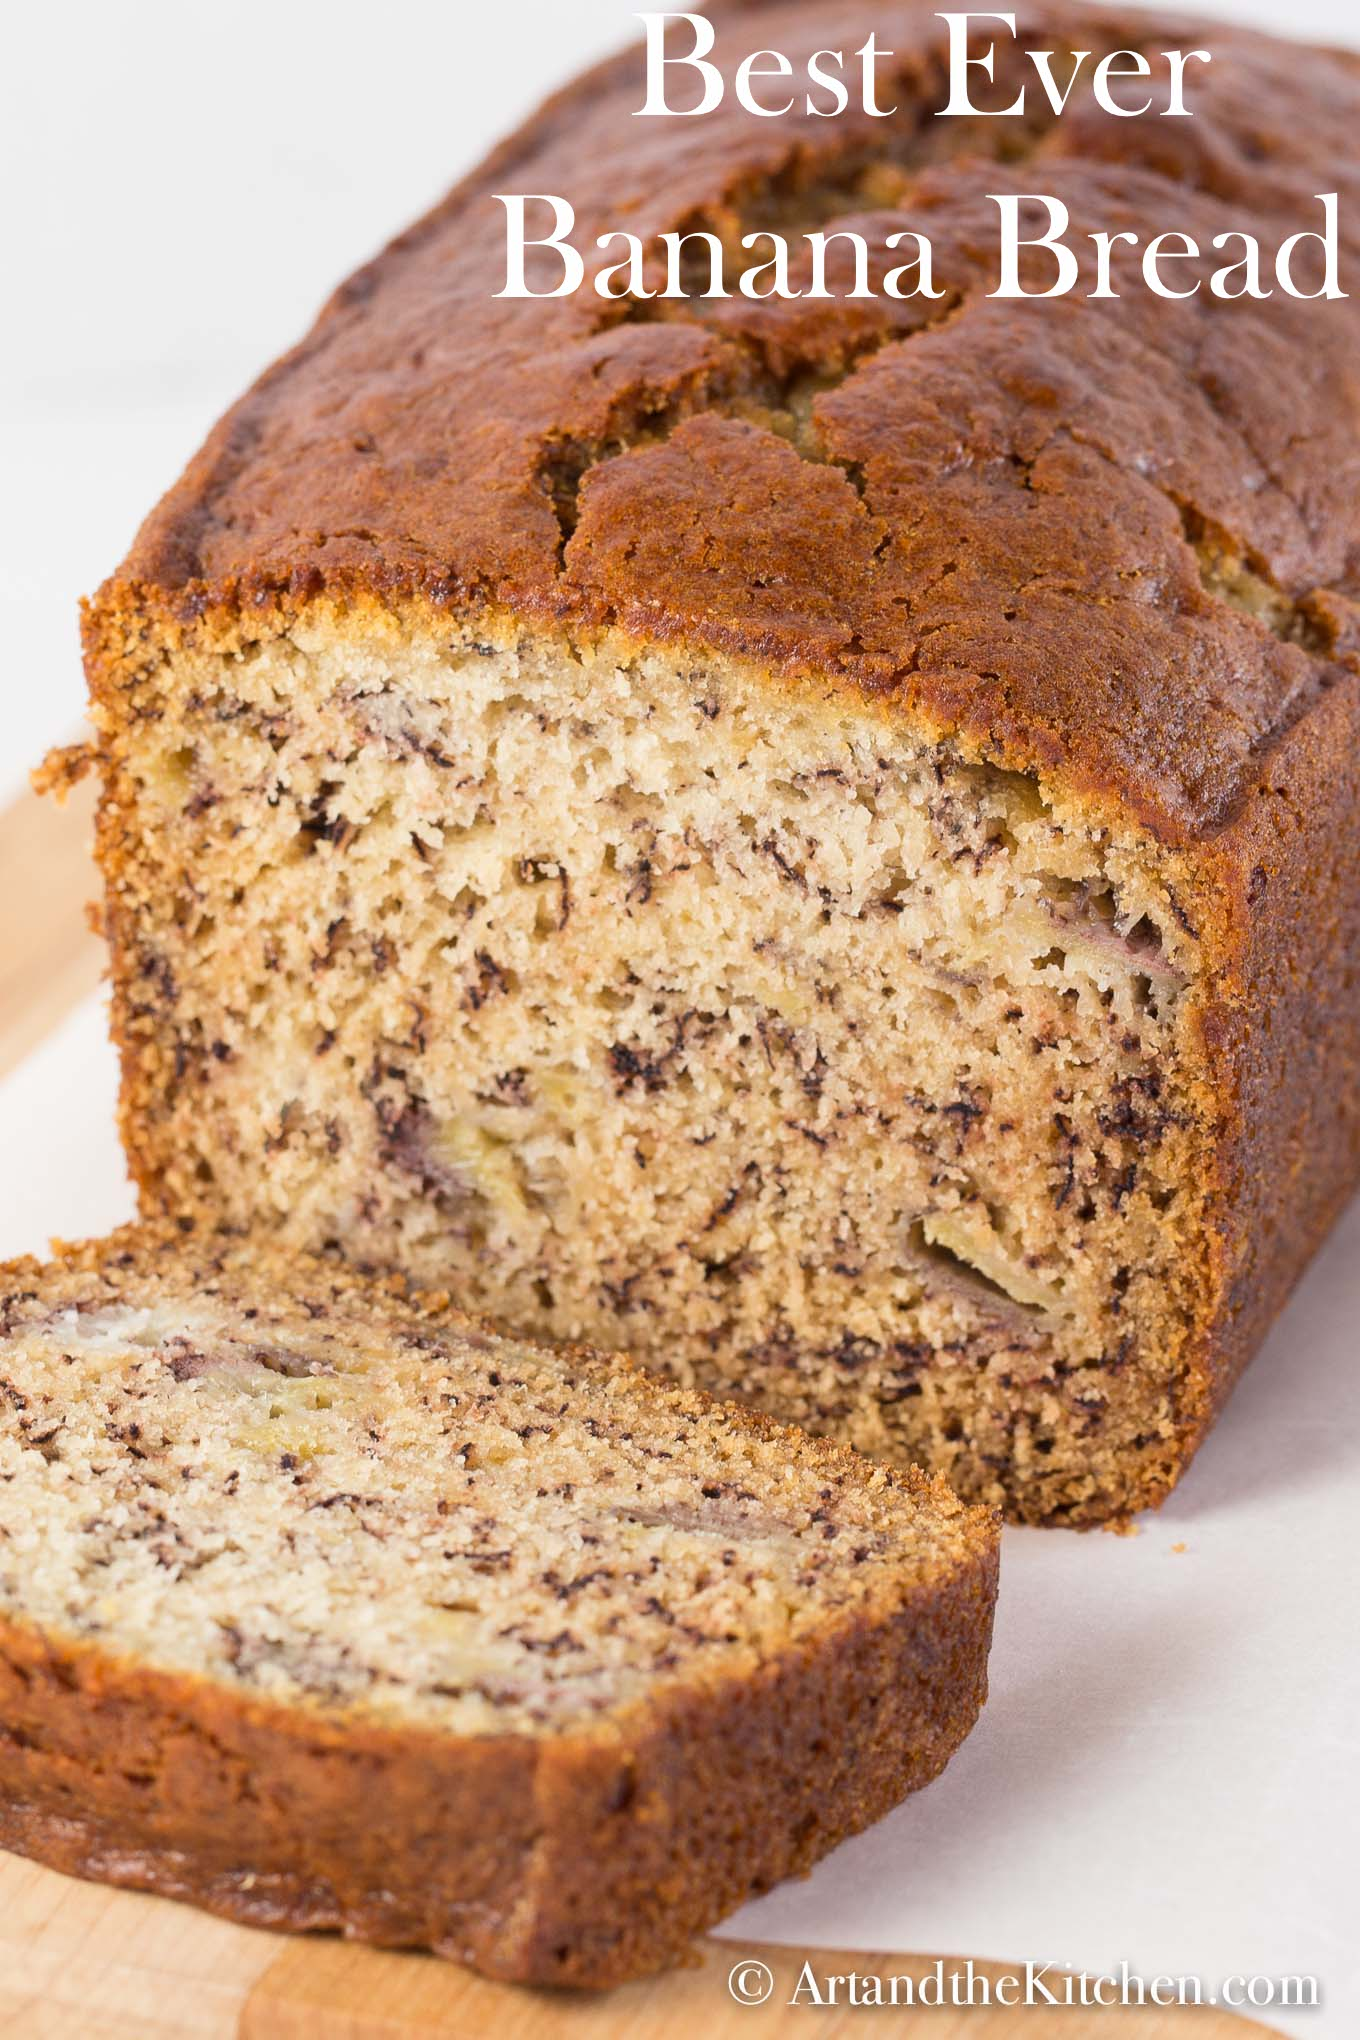 Moist and delicious loaded with banana flavour. This recipe for Best Banana Bread will not disappoint, so quick and easy to make.